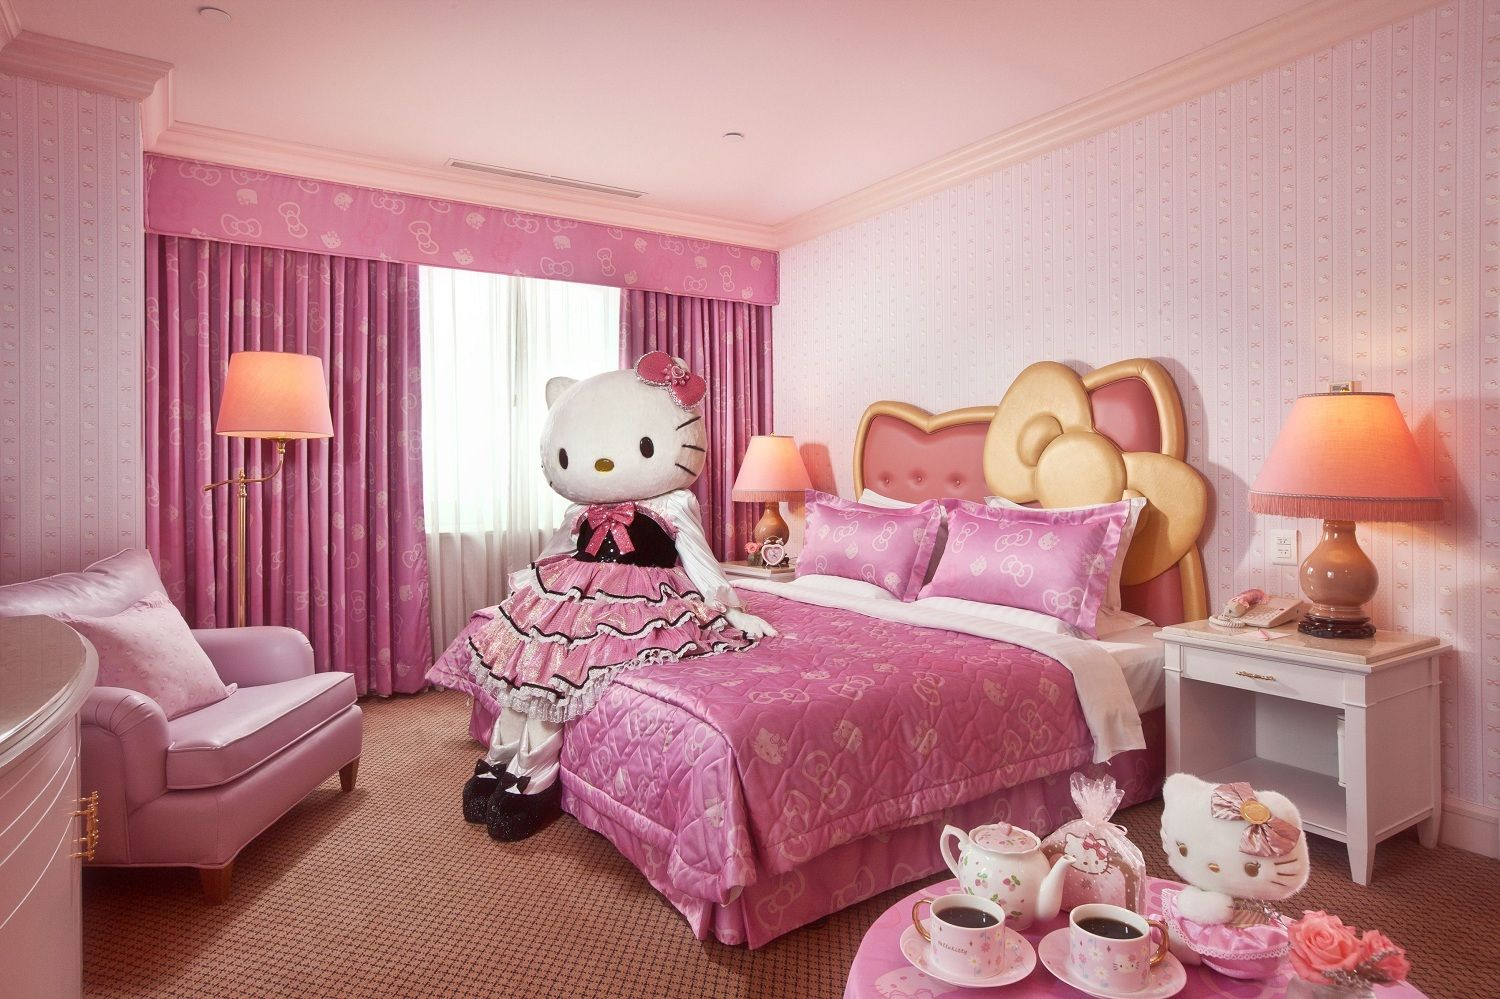 Kids Room: Contemporary Kids Bedroom Design With Leather Hello Kitty  Headboard Bed And Pink Comfy Armchair Also Textured Pink Wallpaper And Hello  Kitty Bed ...